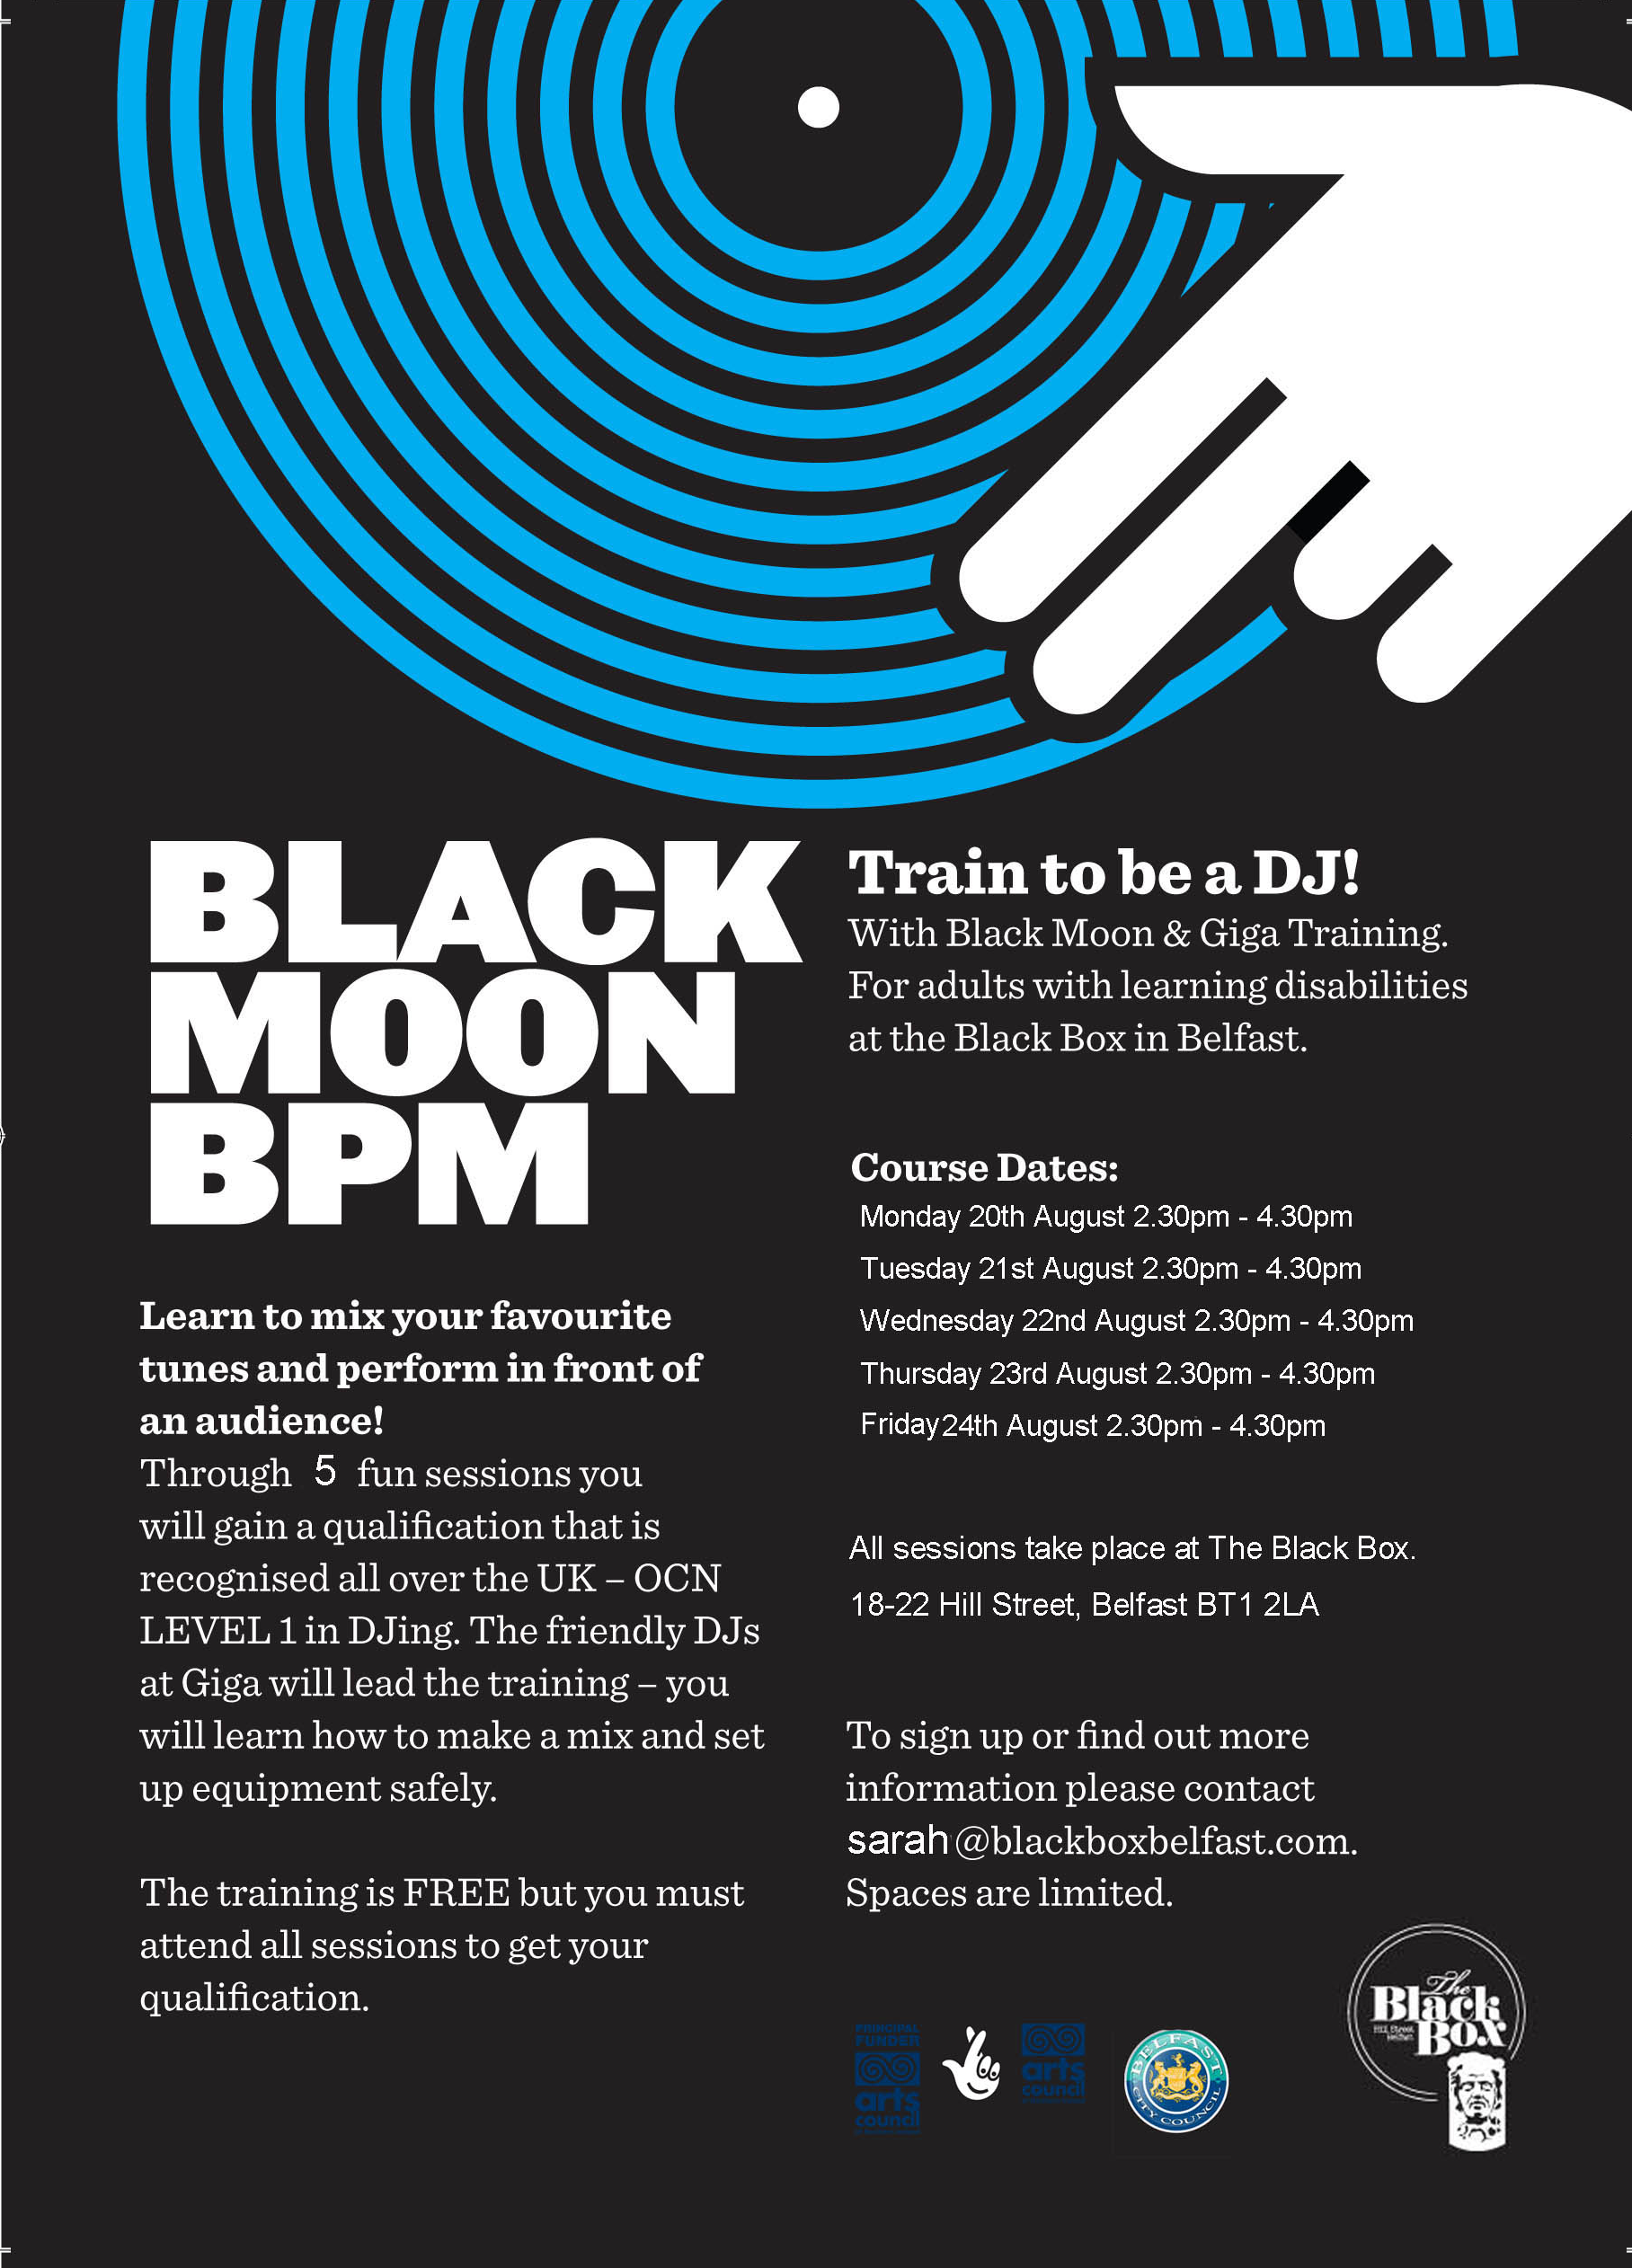 Black Moon BPM - Train to be a DJ! @ The Black Box